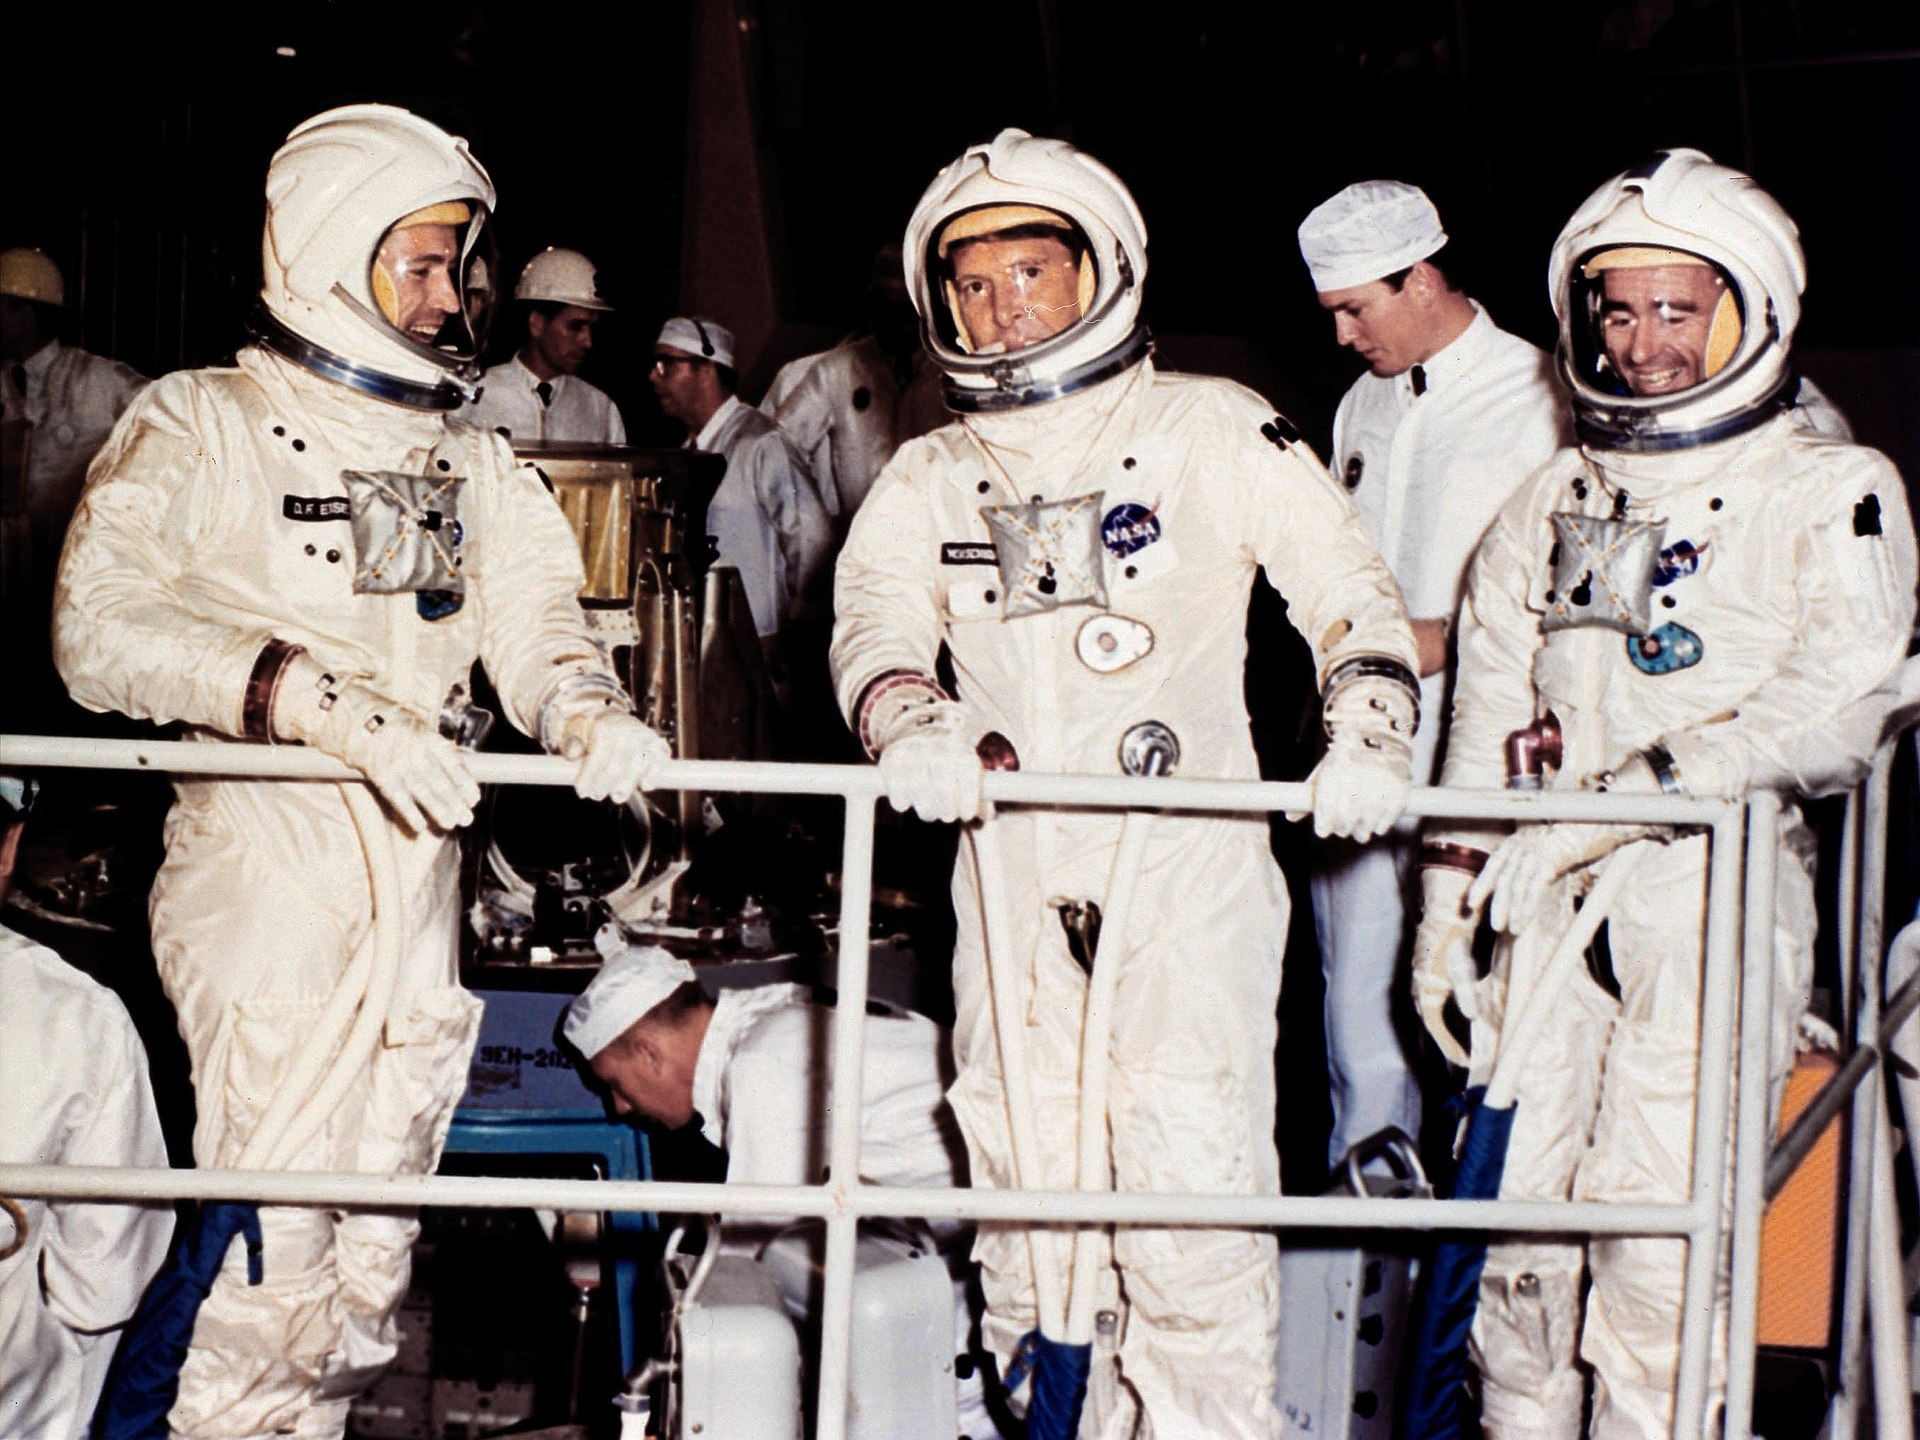 apollo missions objectives - photo #40